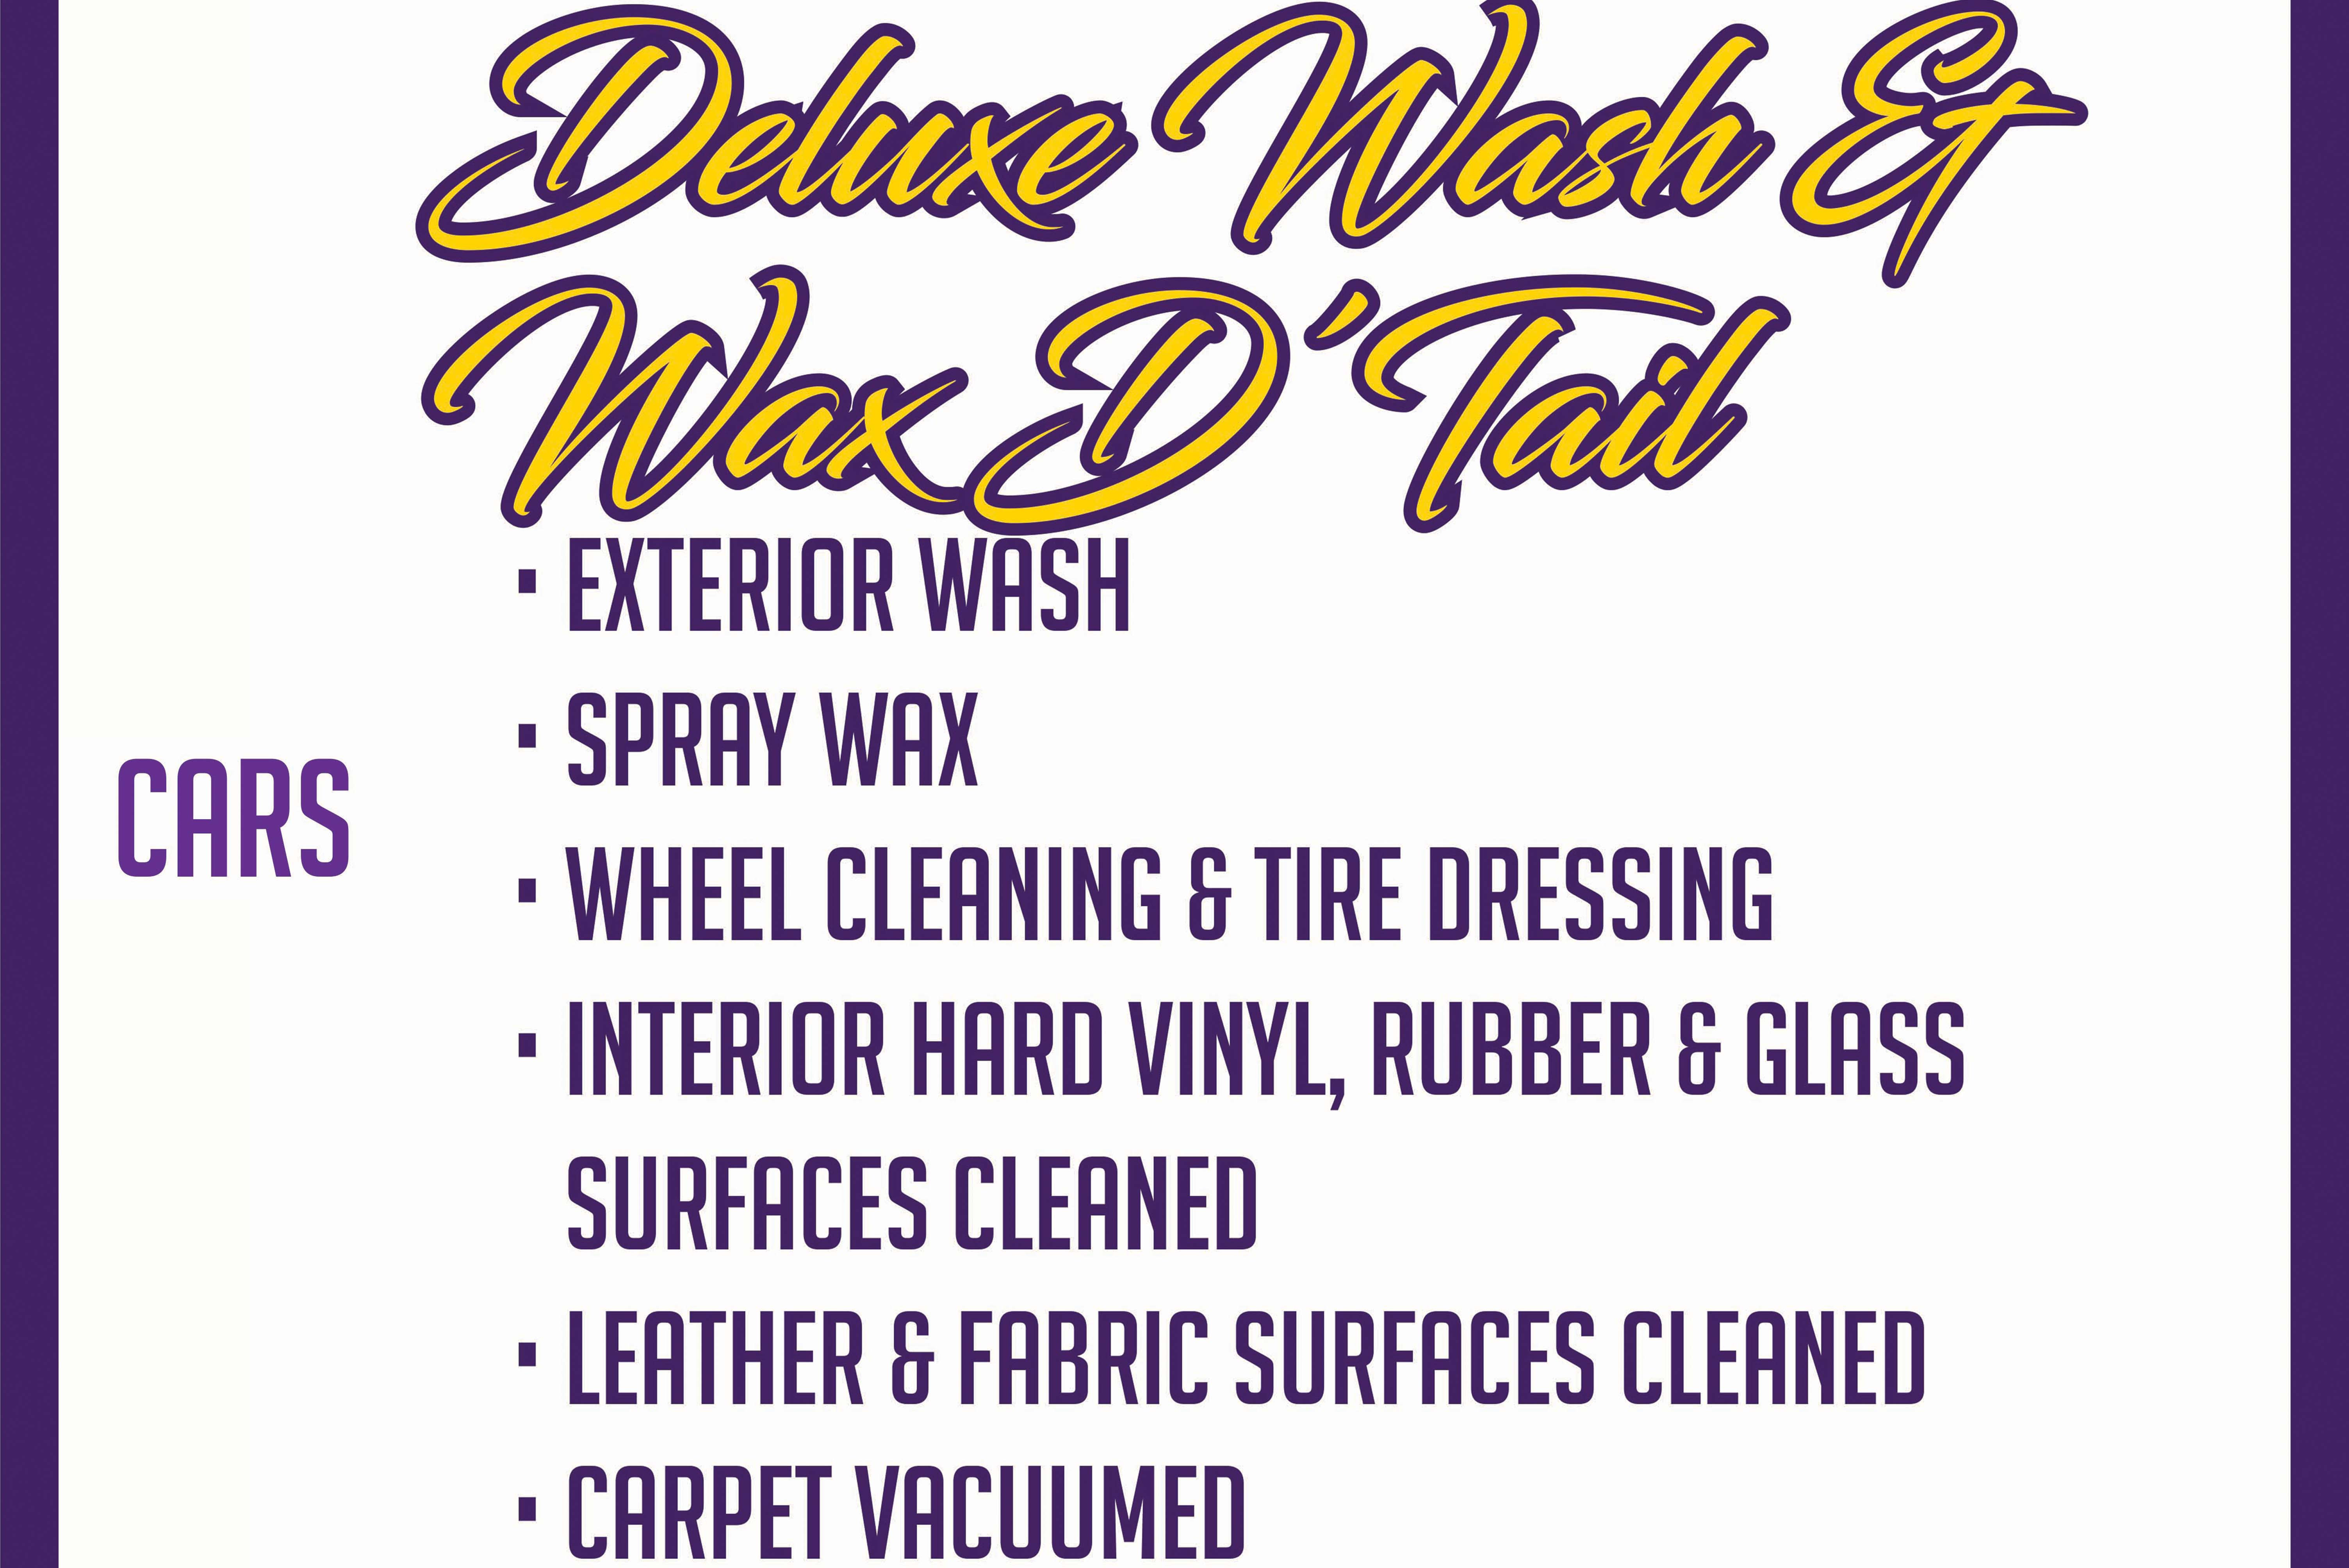 (CARS)Deluxe Wash & Wax D'Tail